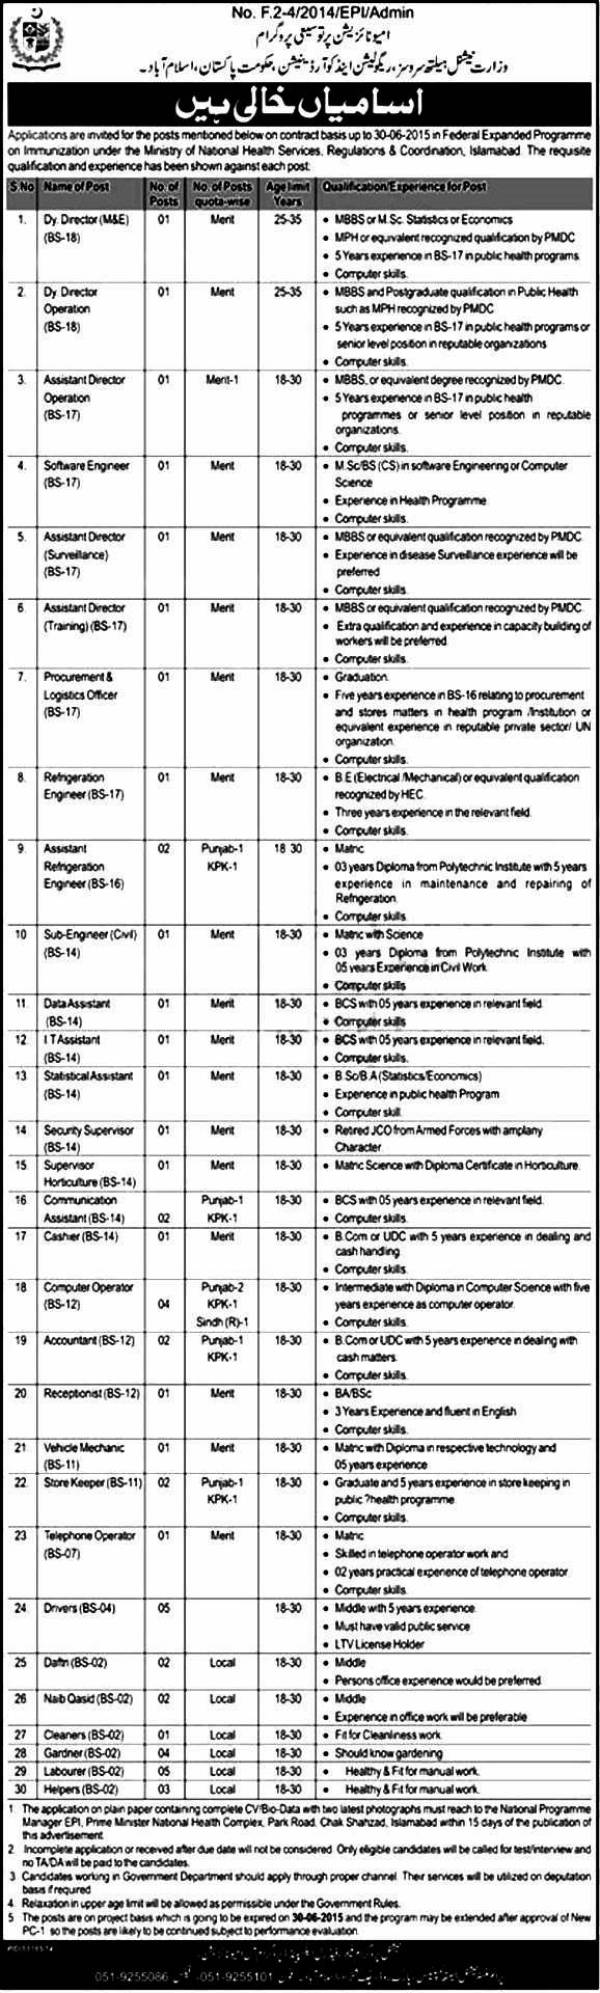 Ministry of National Health Services Jobs 2015 Application form Download Eligibility Criteria Dates